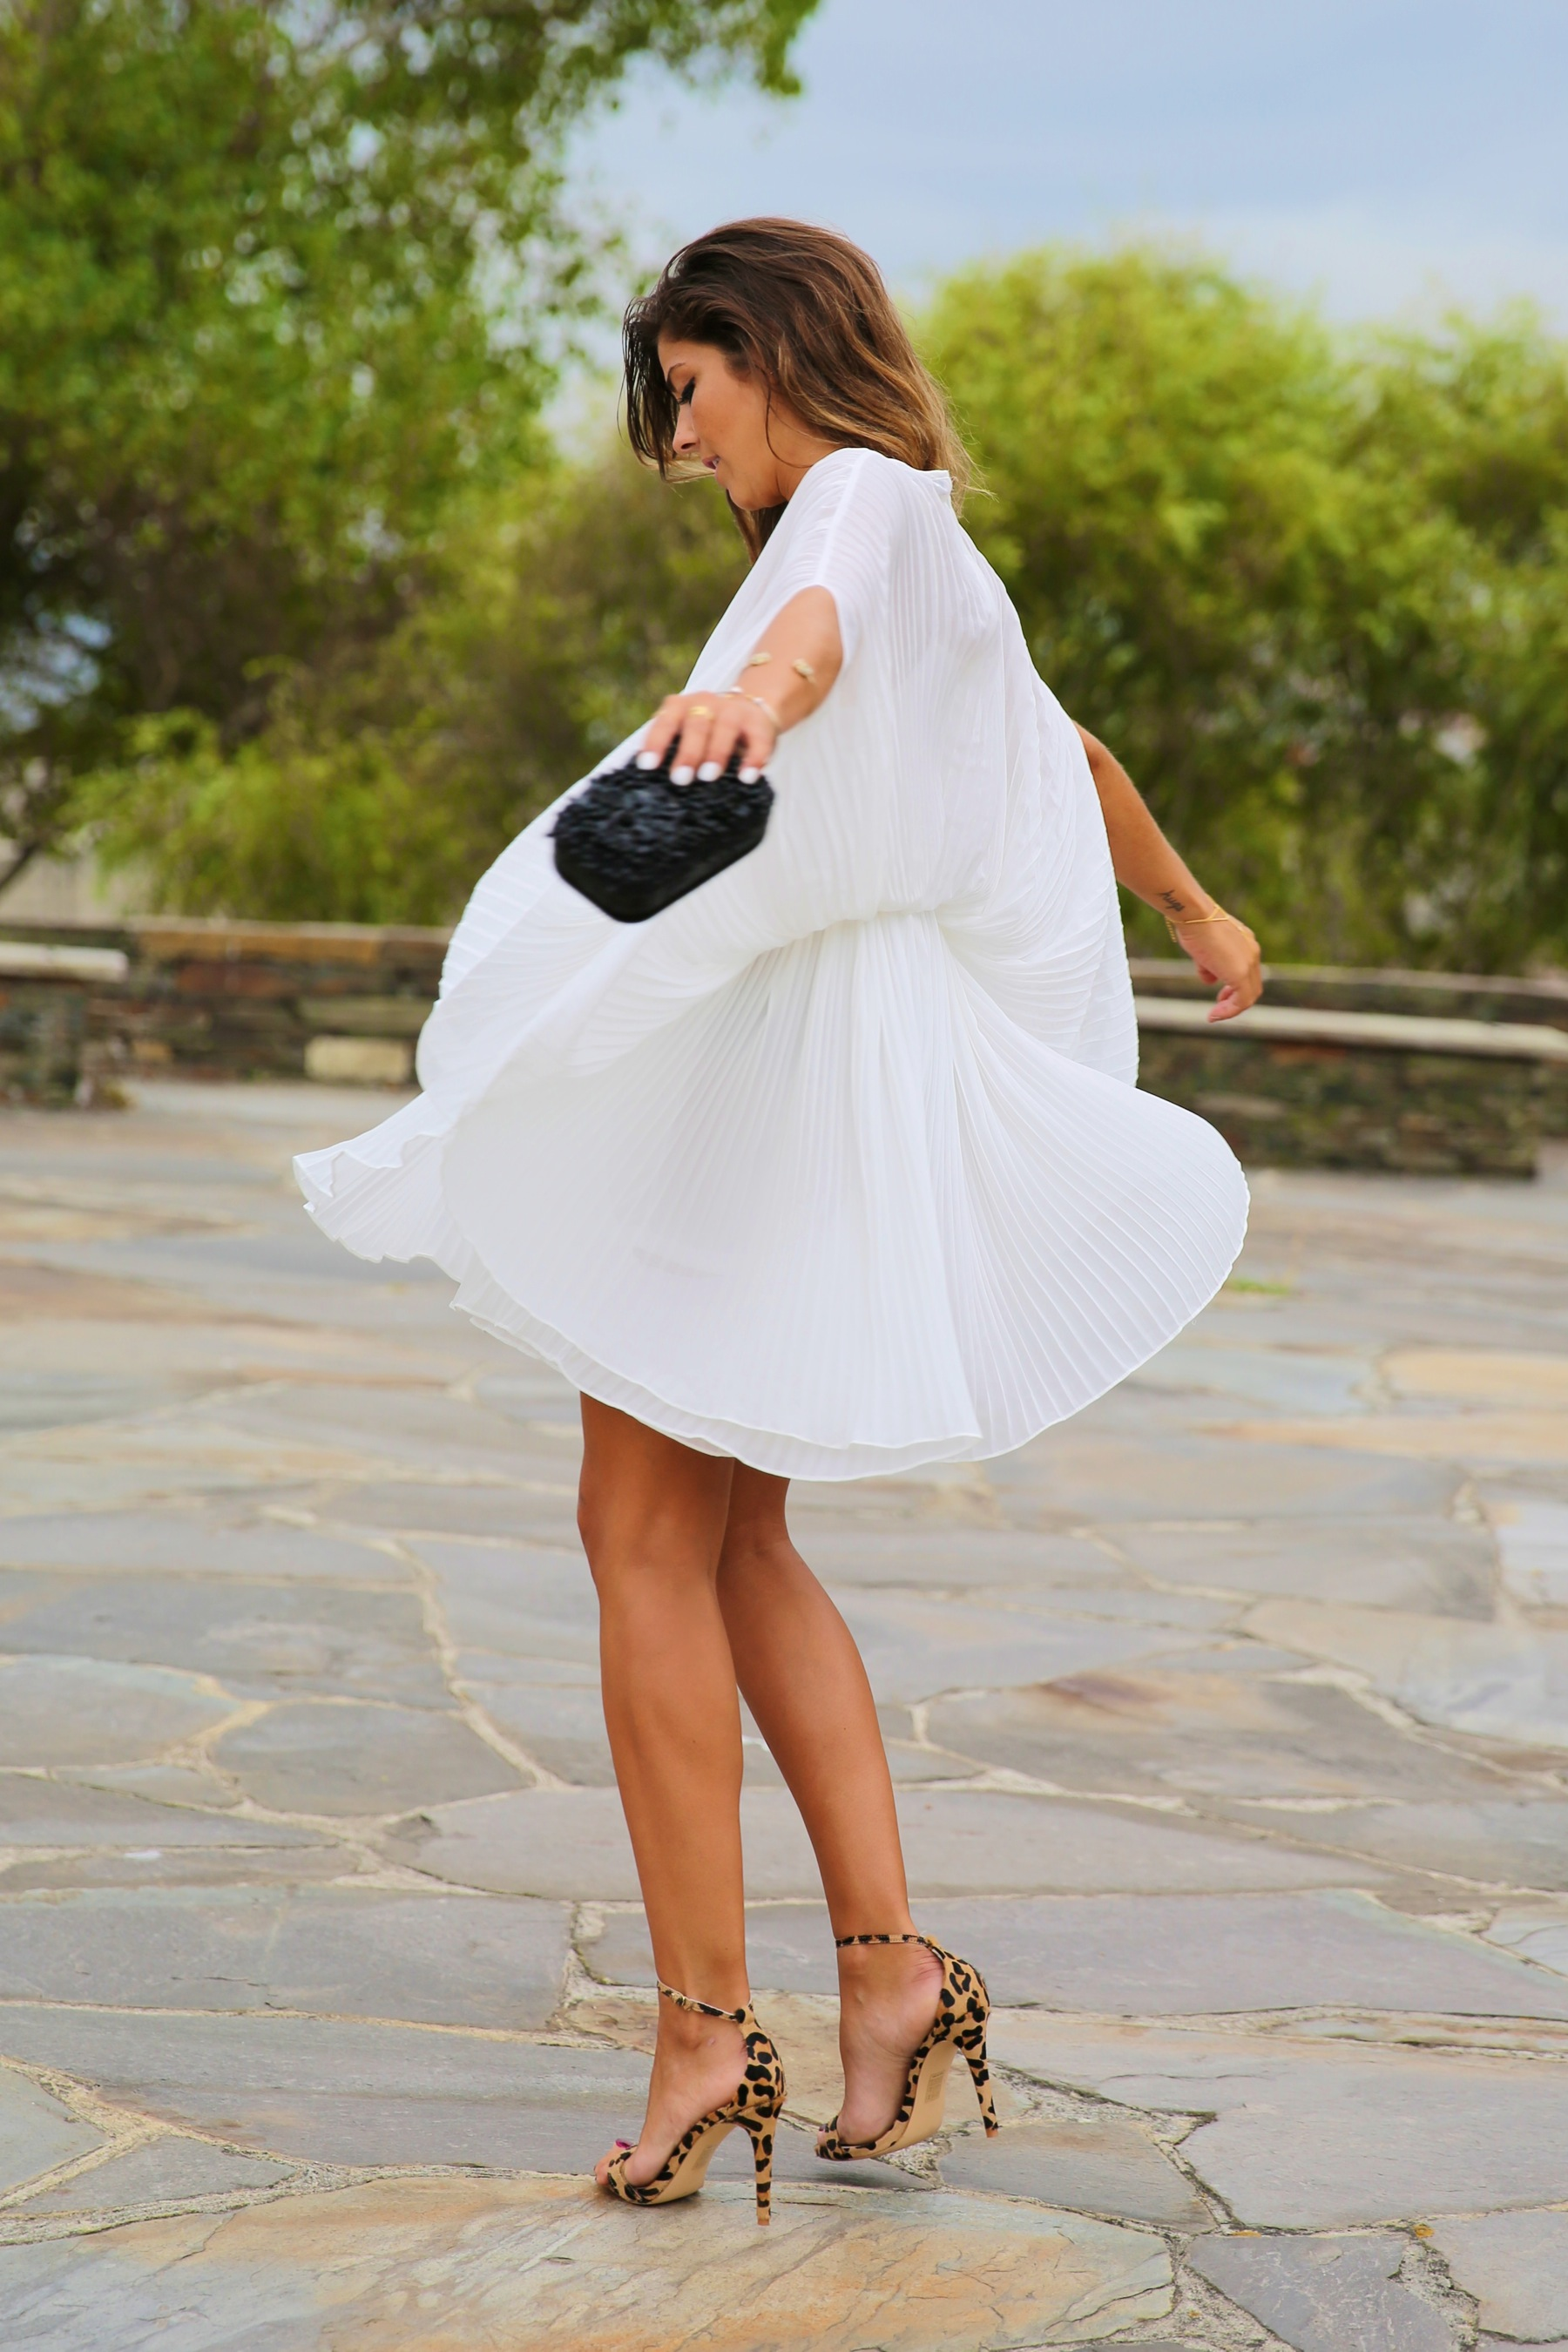 trendy_taste-look-outfit-street_style-fashion_spain-moda_españa-blog-blogger-vestido_blanco-white_dress-müic-jewels-joyas-leo_sandals-sandalias_leopardo-clutch_pedreria-10